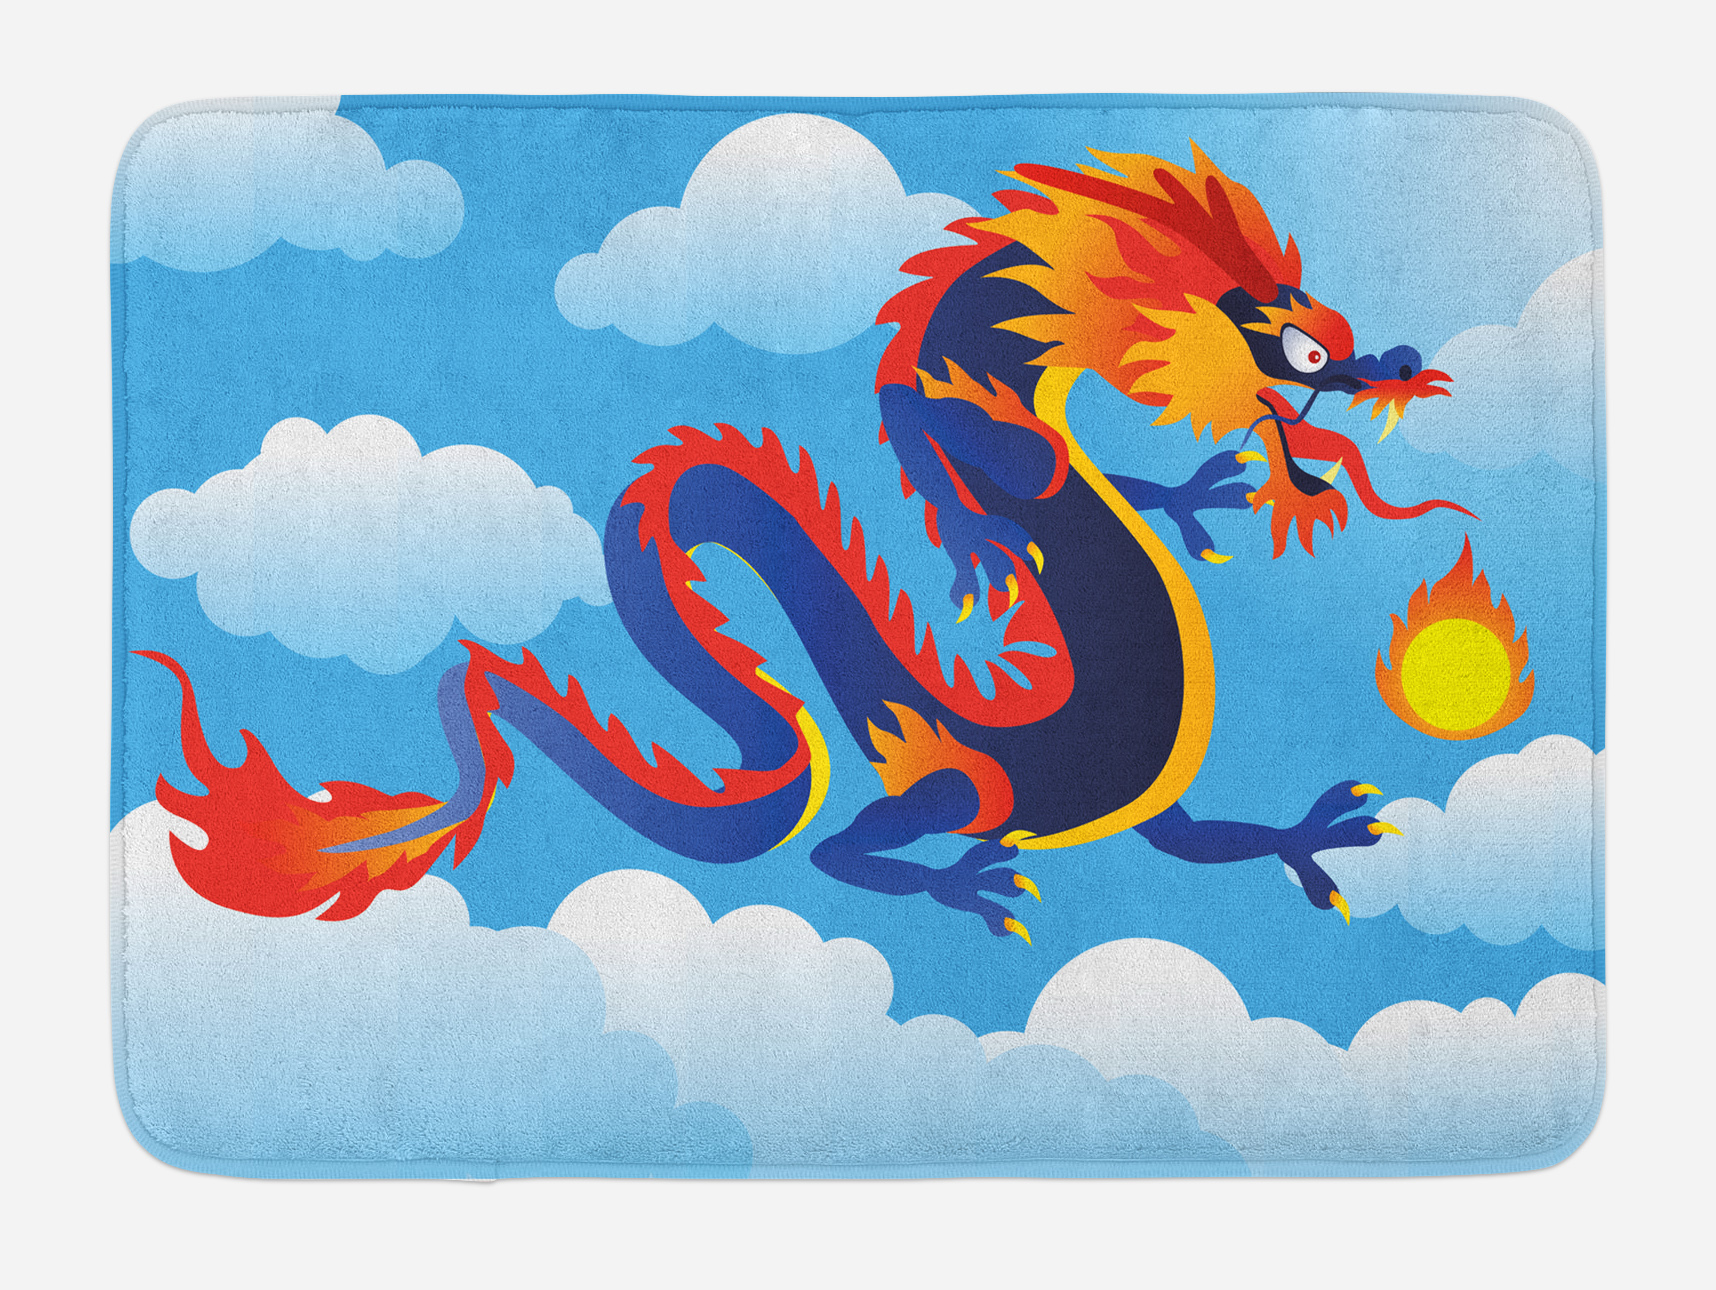 Dragon Bathroom Accessories Dragon Bath Mat Surreal Folk Tale Creature Spitting Fire